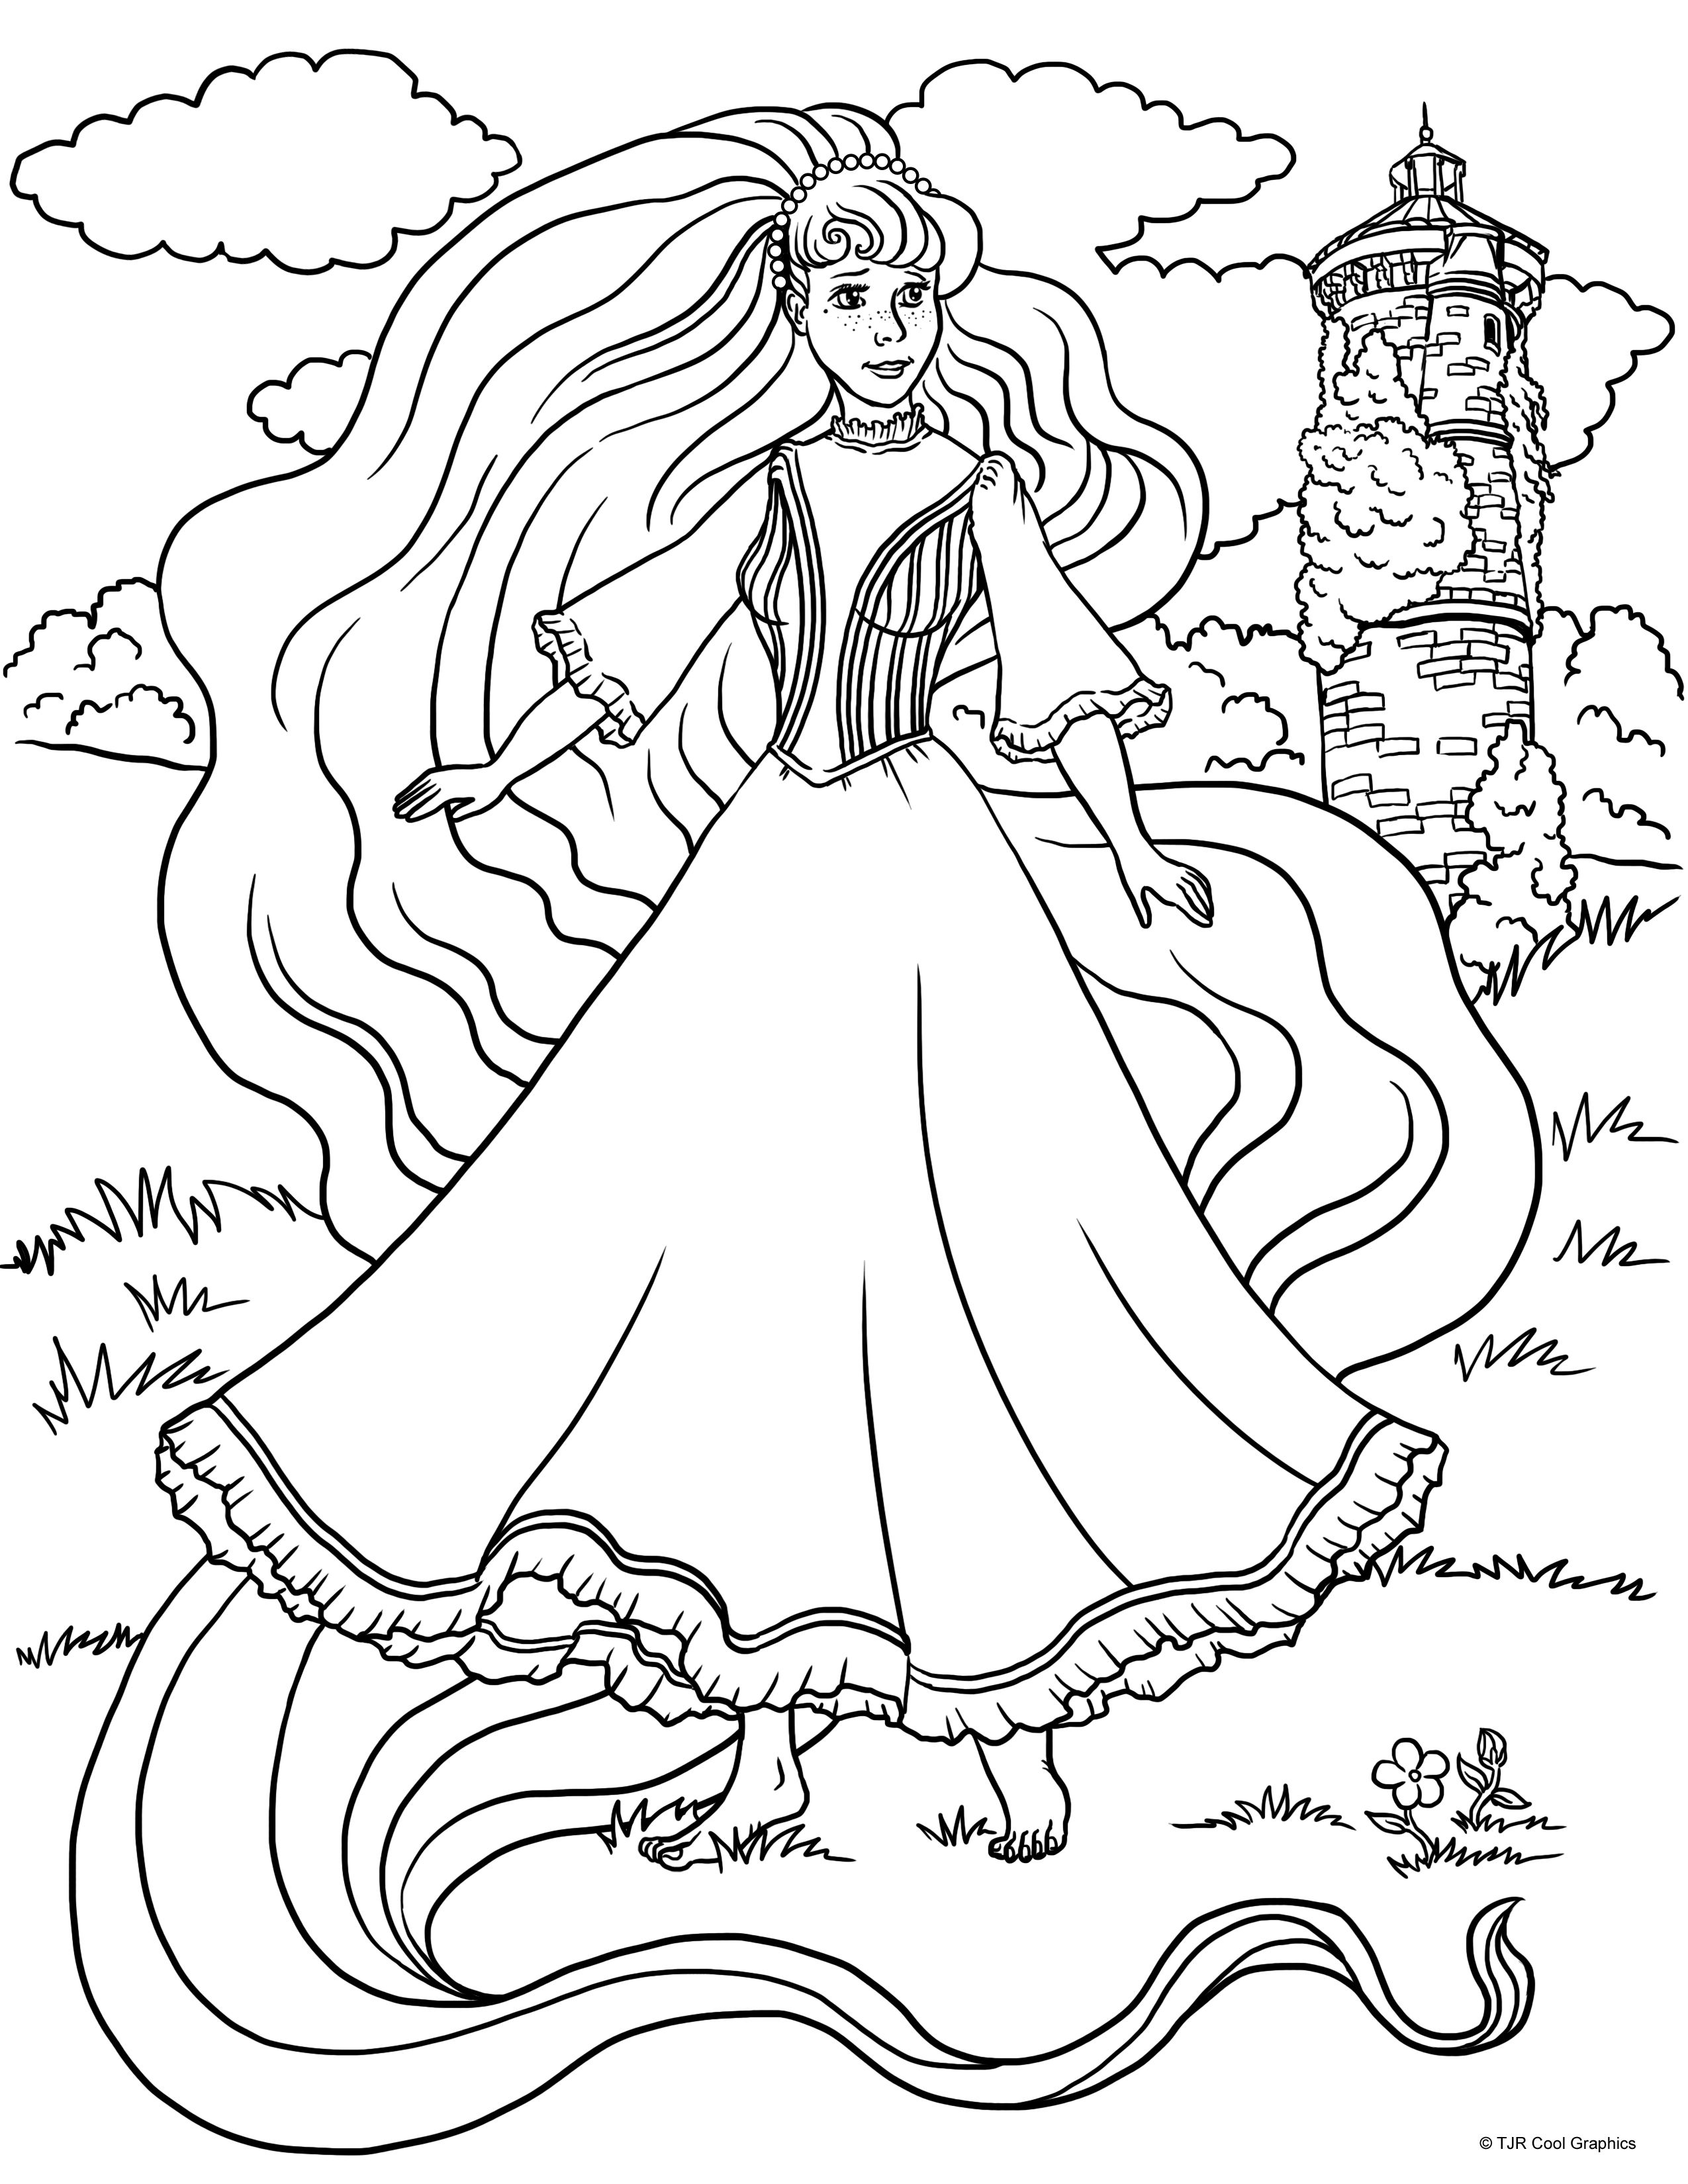 rapunzel print out printable coloring pages rapunzel princess coloring out print rapunzel